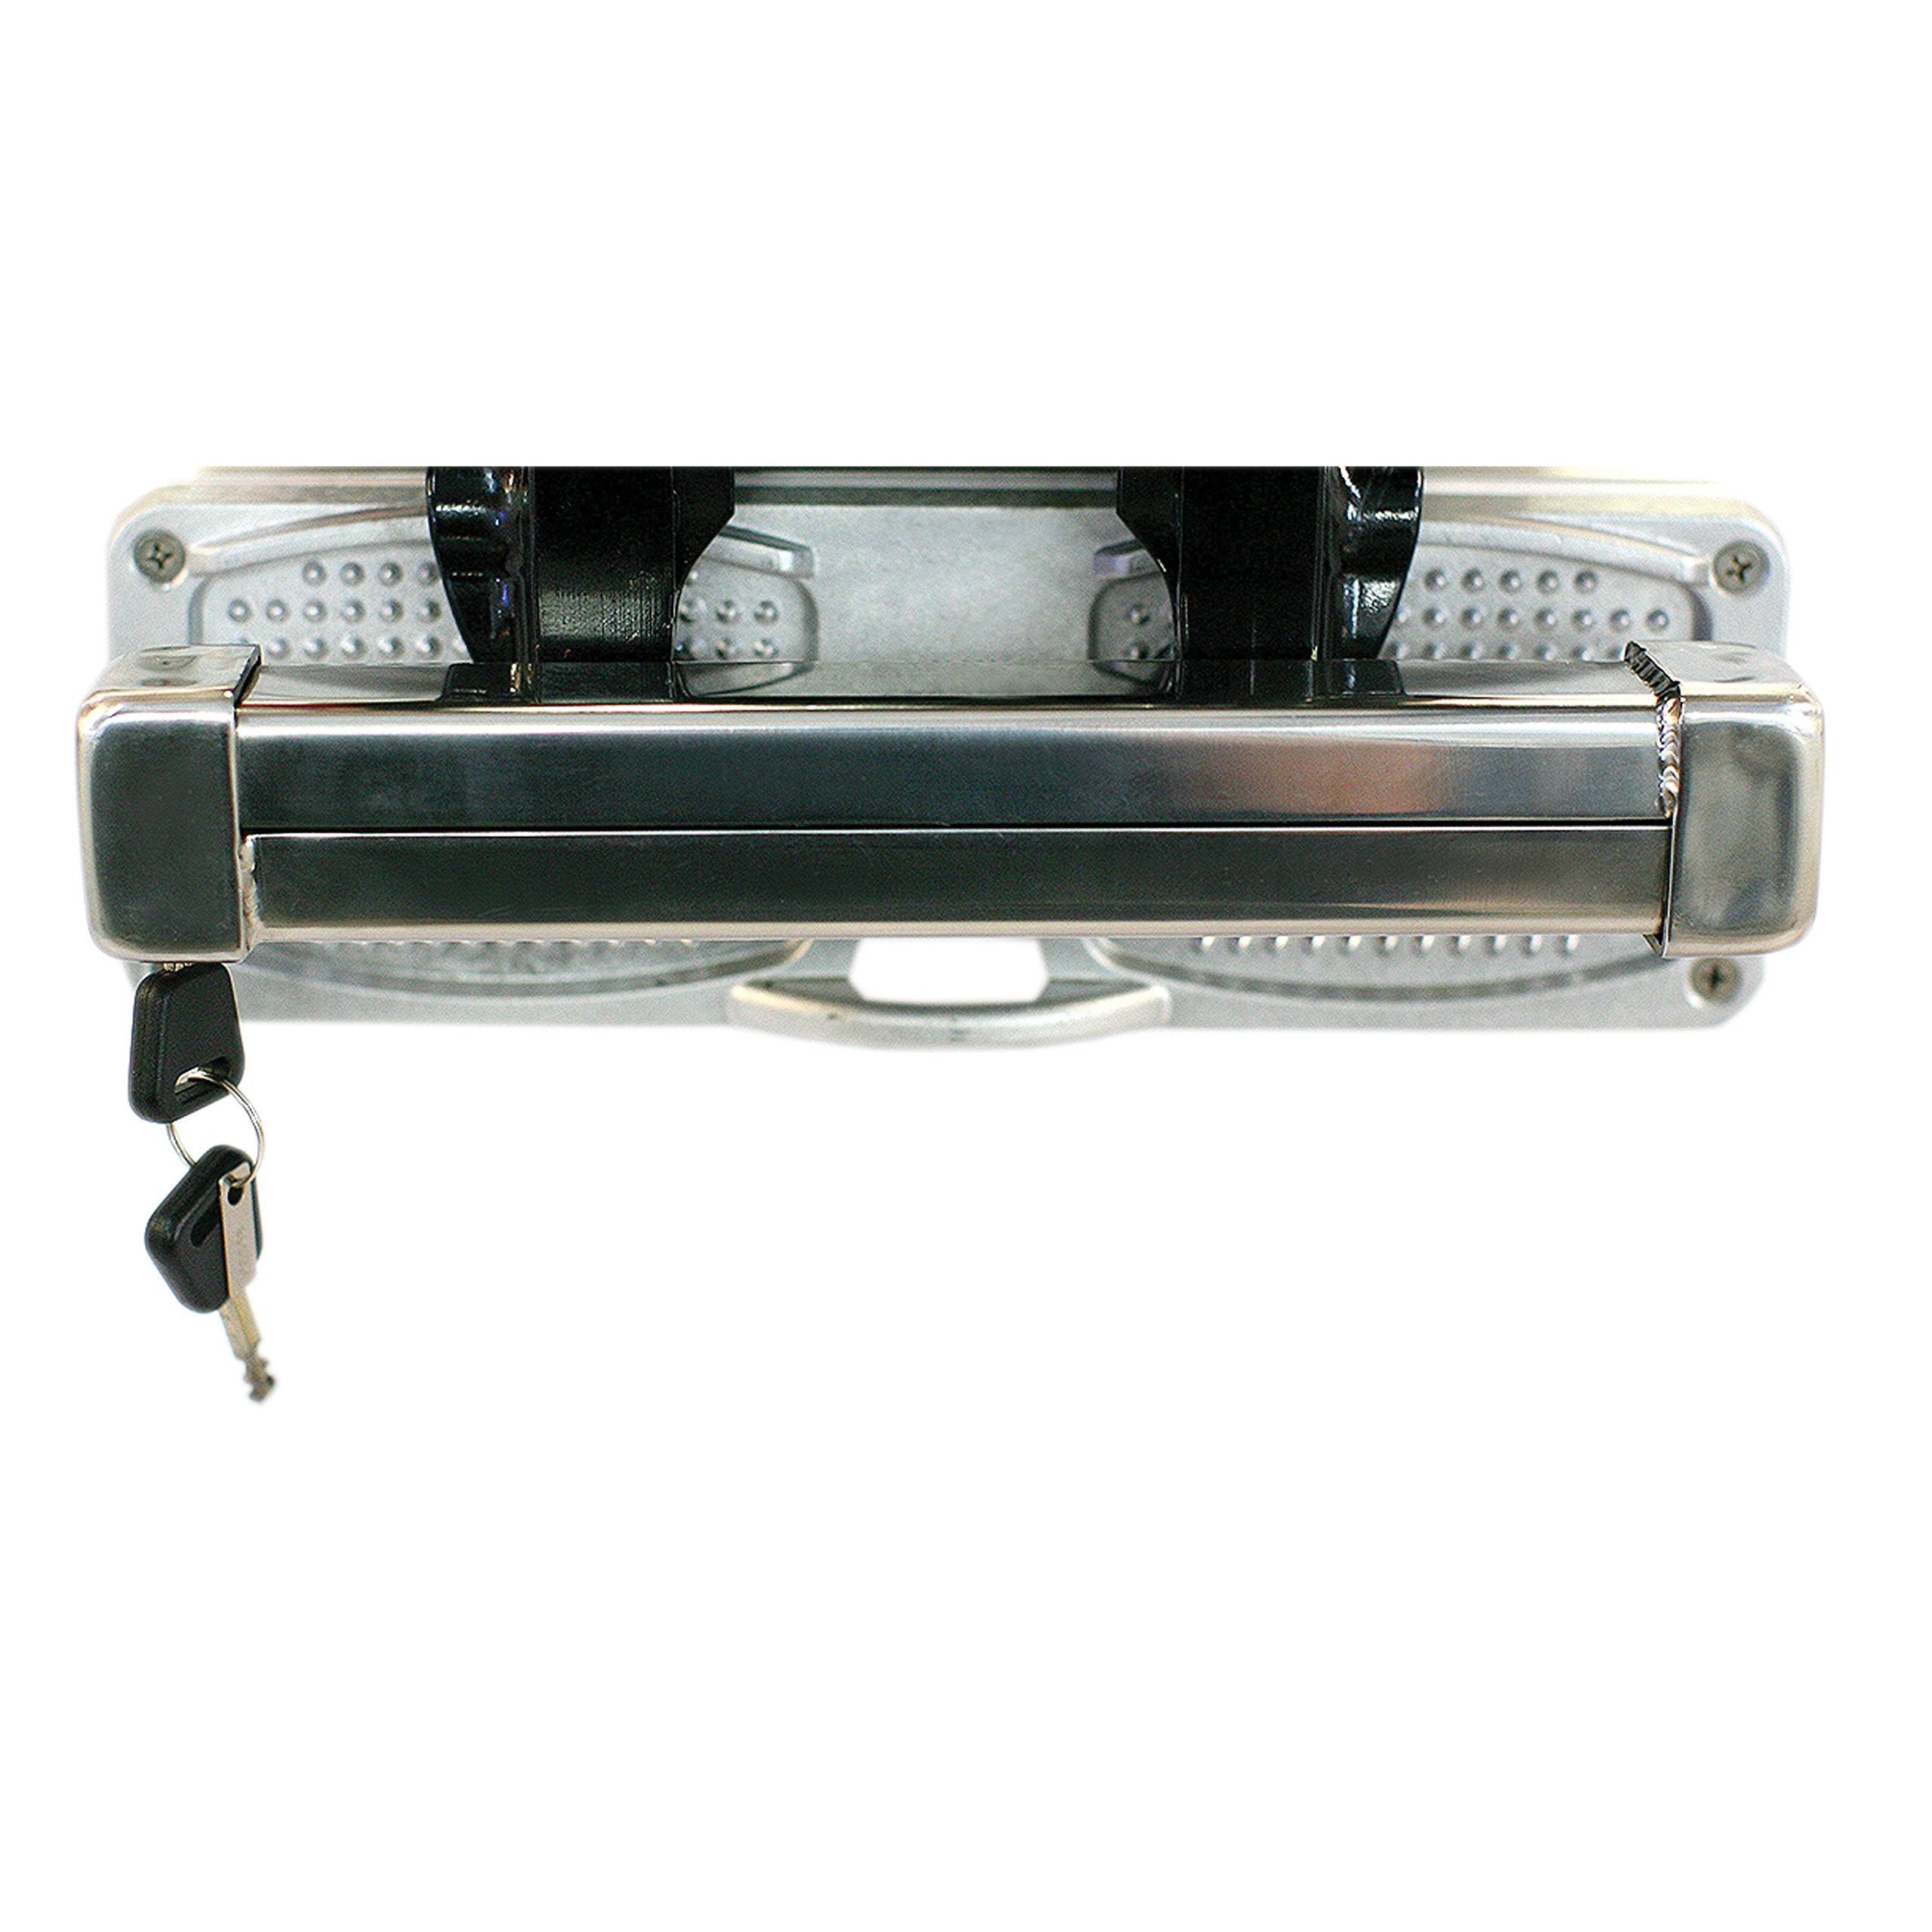 Panther 75-8201 Outboard Motor Lock by Panther ATV